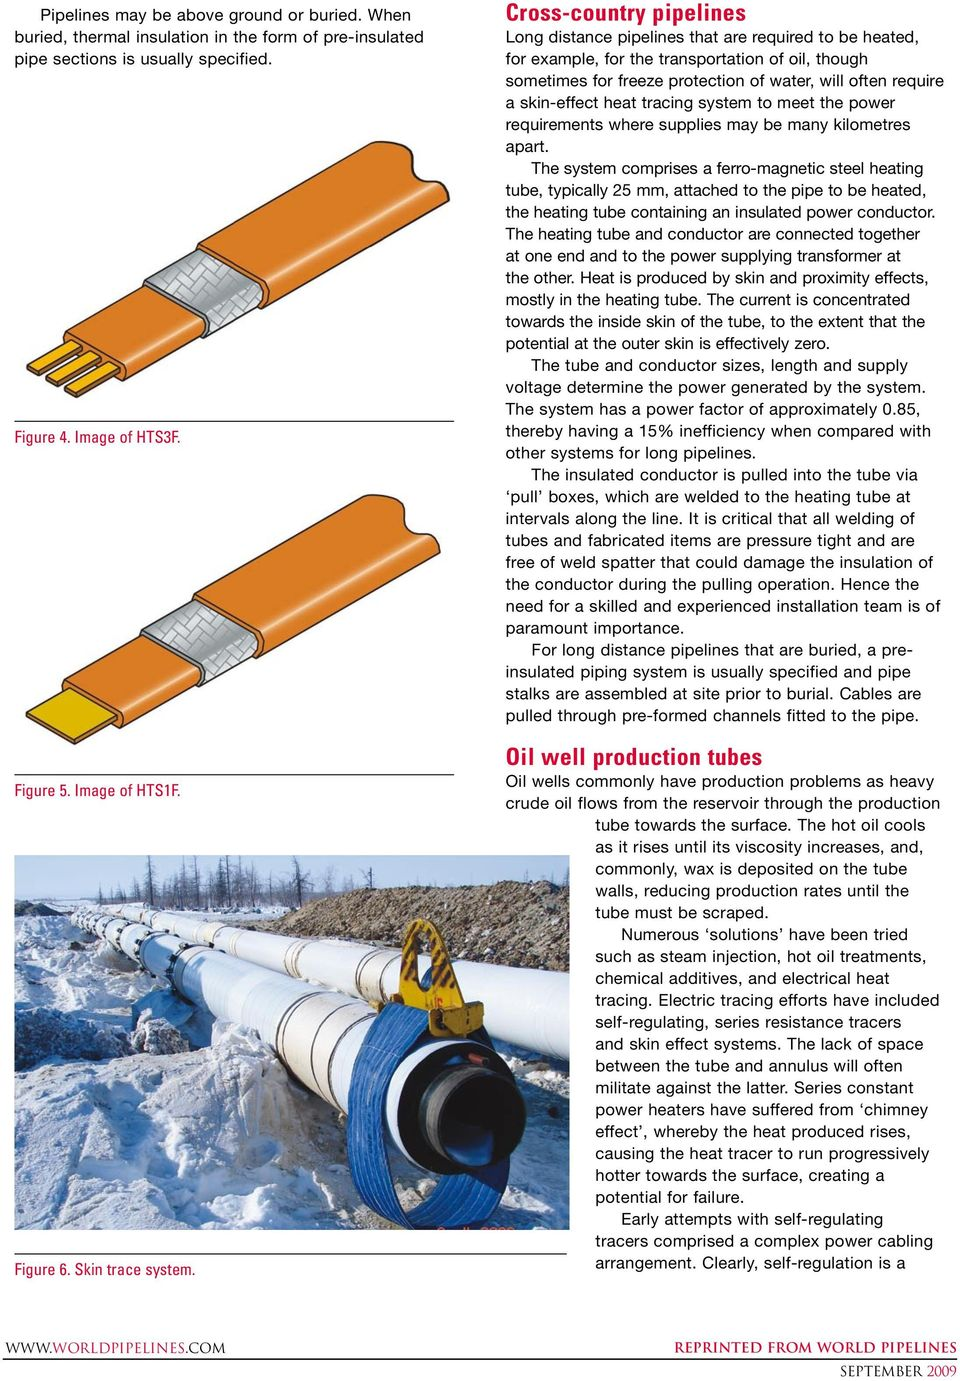 Cross-country pipelines Long distance pipelines that are required to be heated, for example, for the transportation of oil, though sometimes for freeze protection of water, will often require a